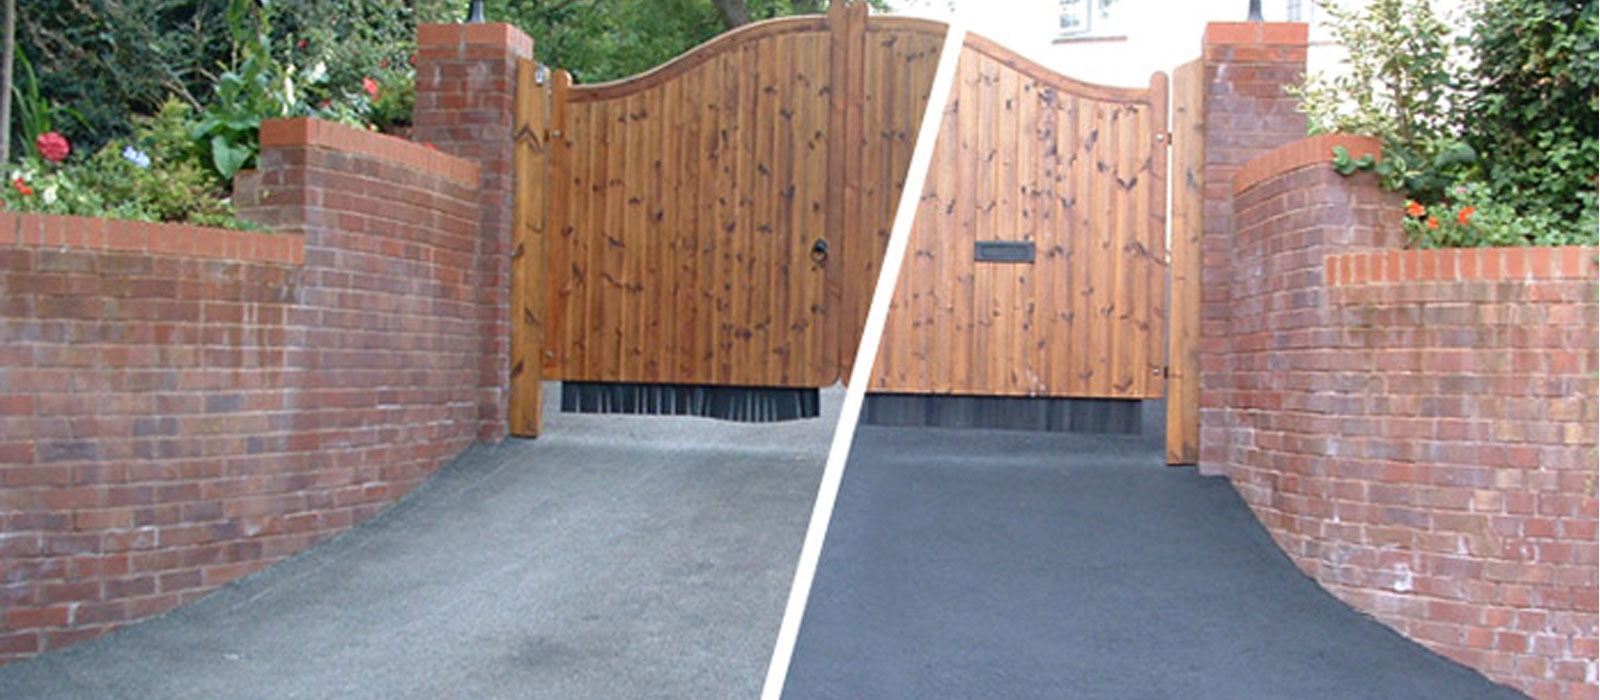 Tarmac Amp Resin Bound Driveway Cleaning In Essex Amp London